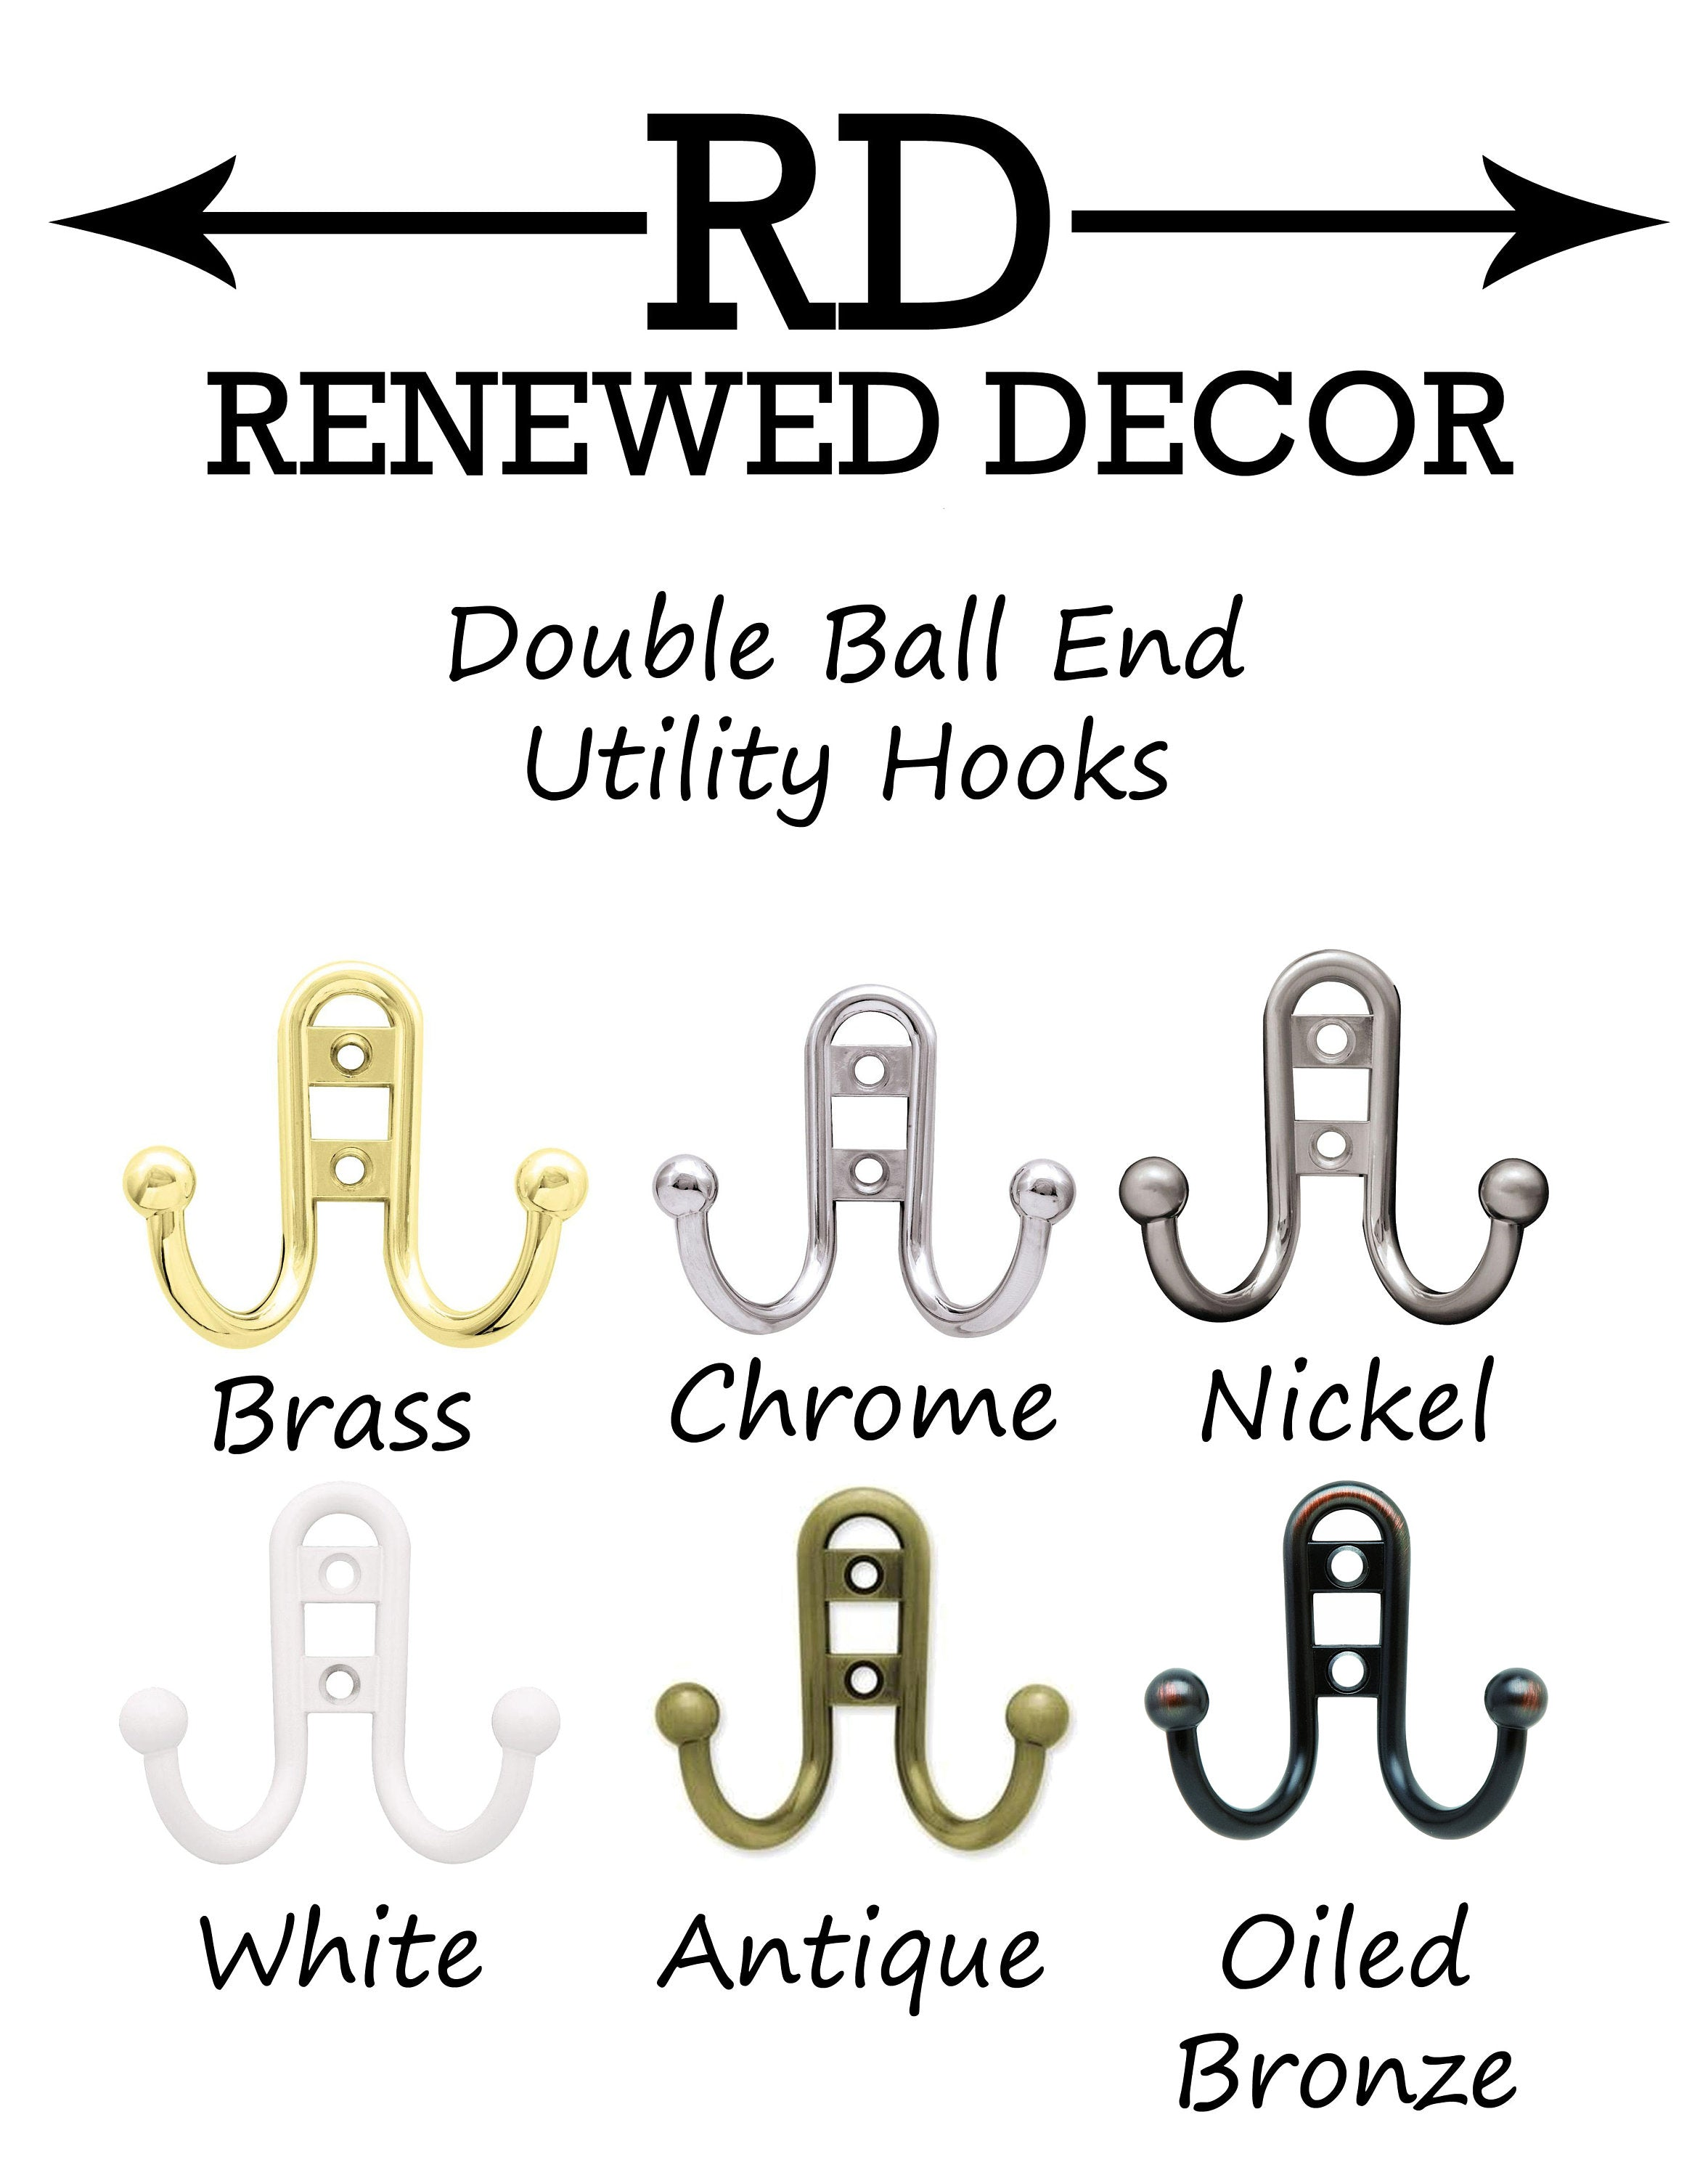 Countryside Double Utility Hook Rack - 20 Paint Colors - Renewed Decor & Storage